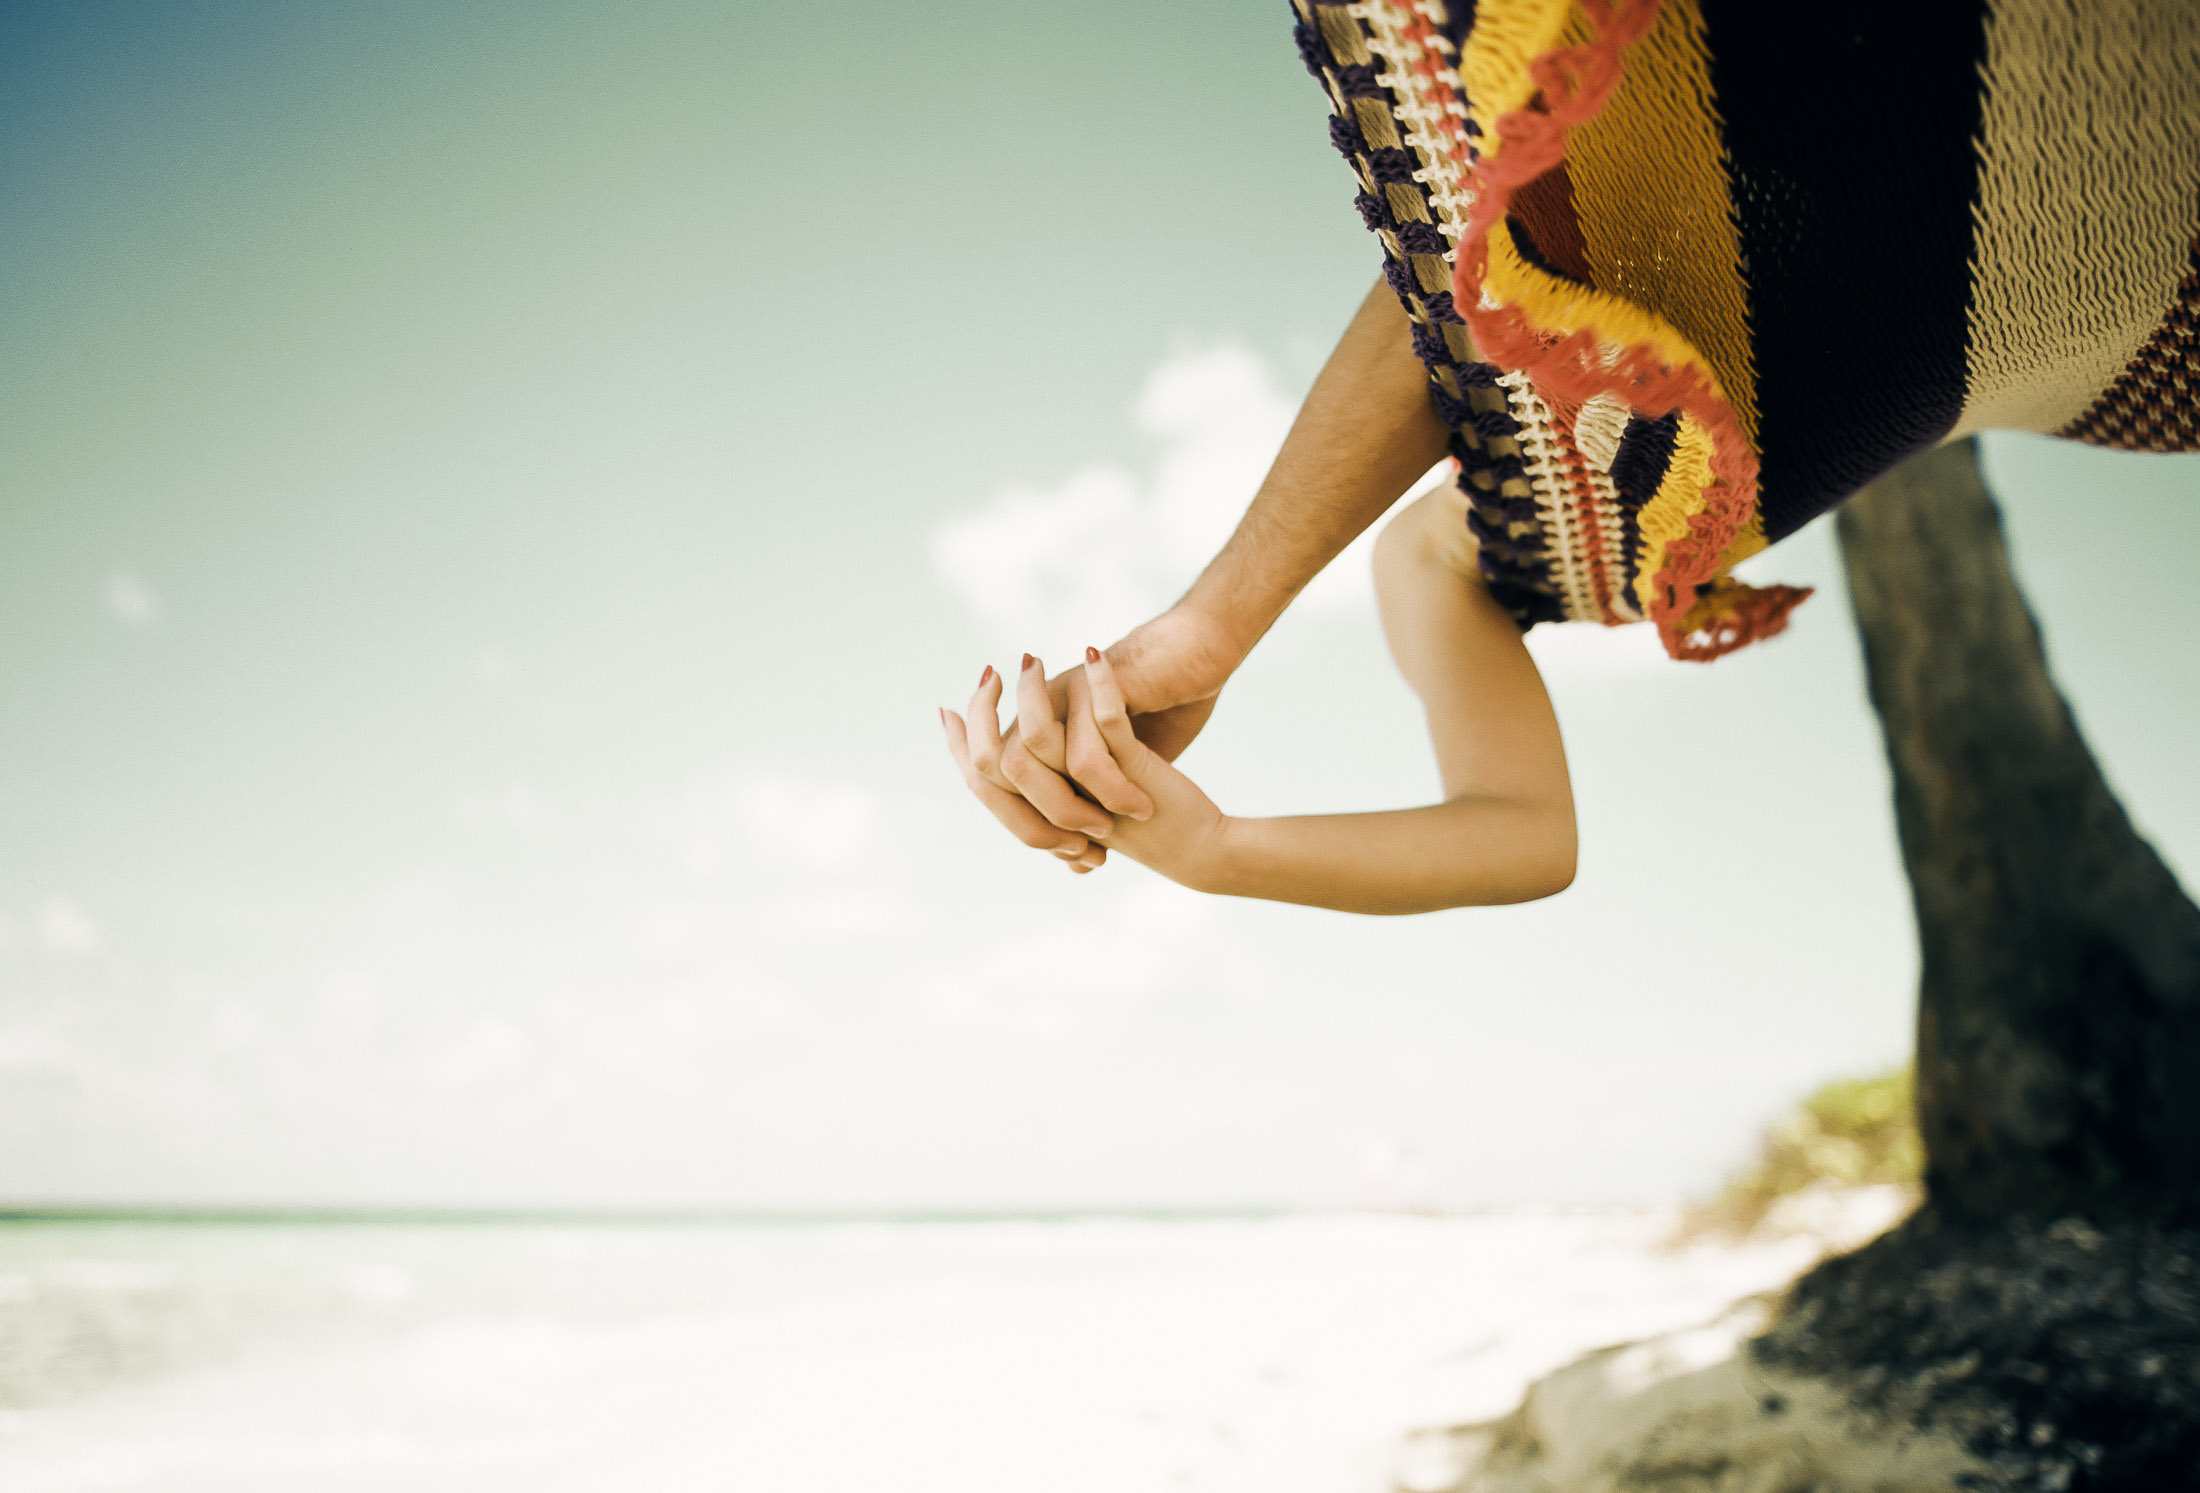 Hands intertwined on beach